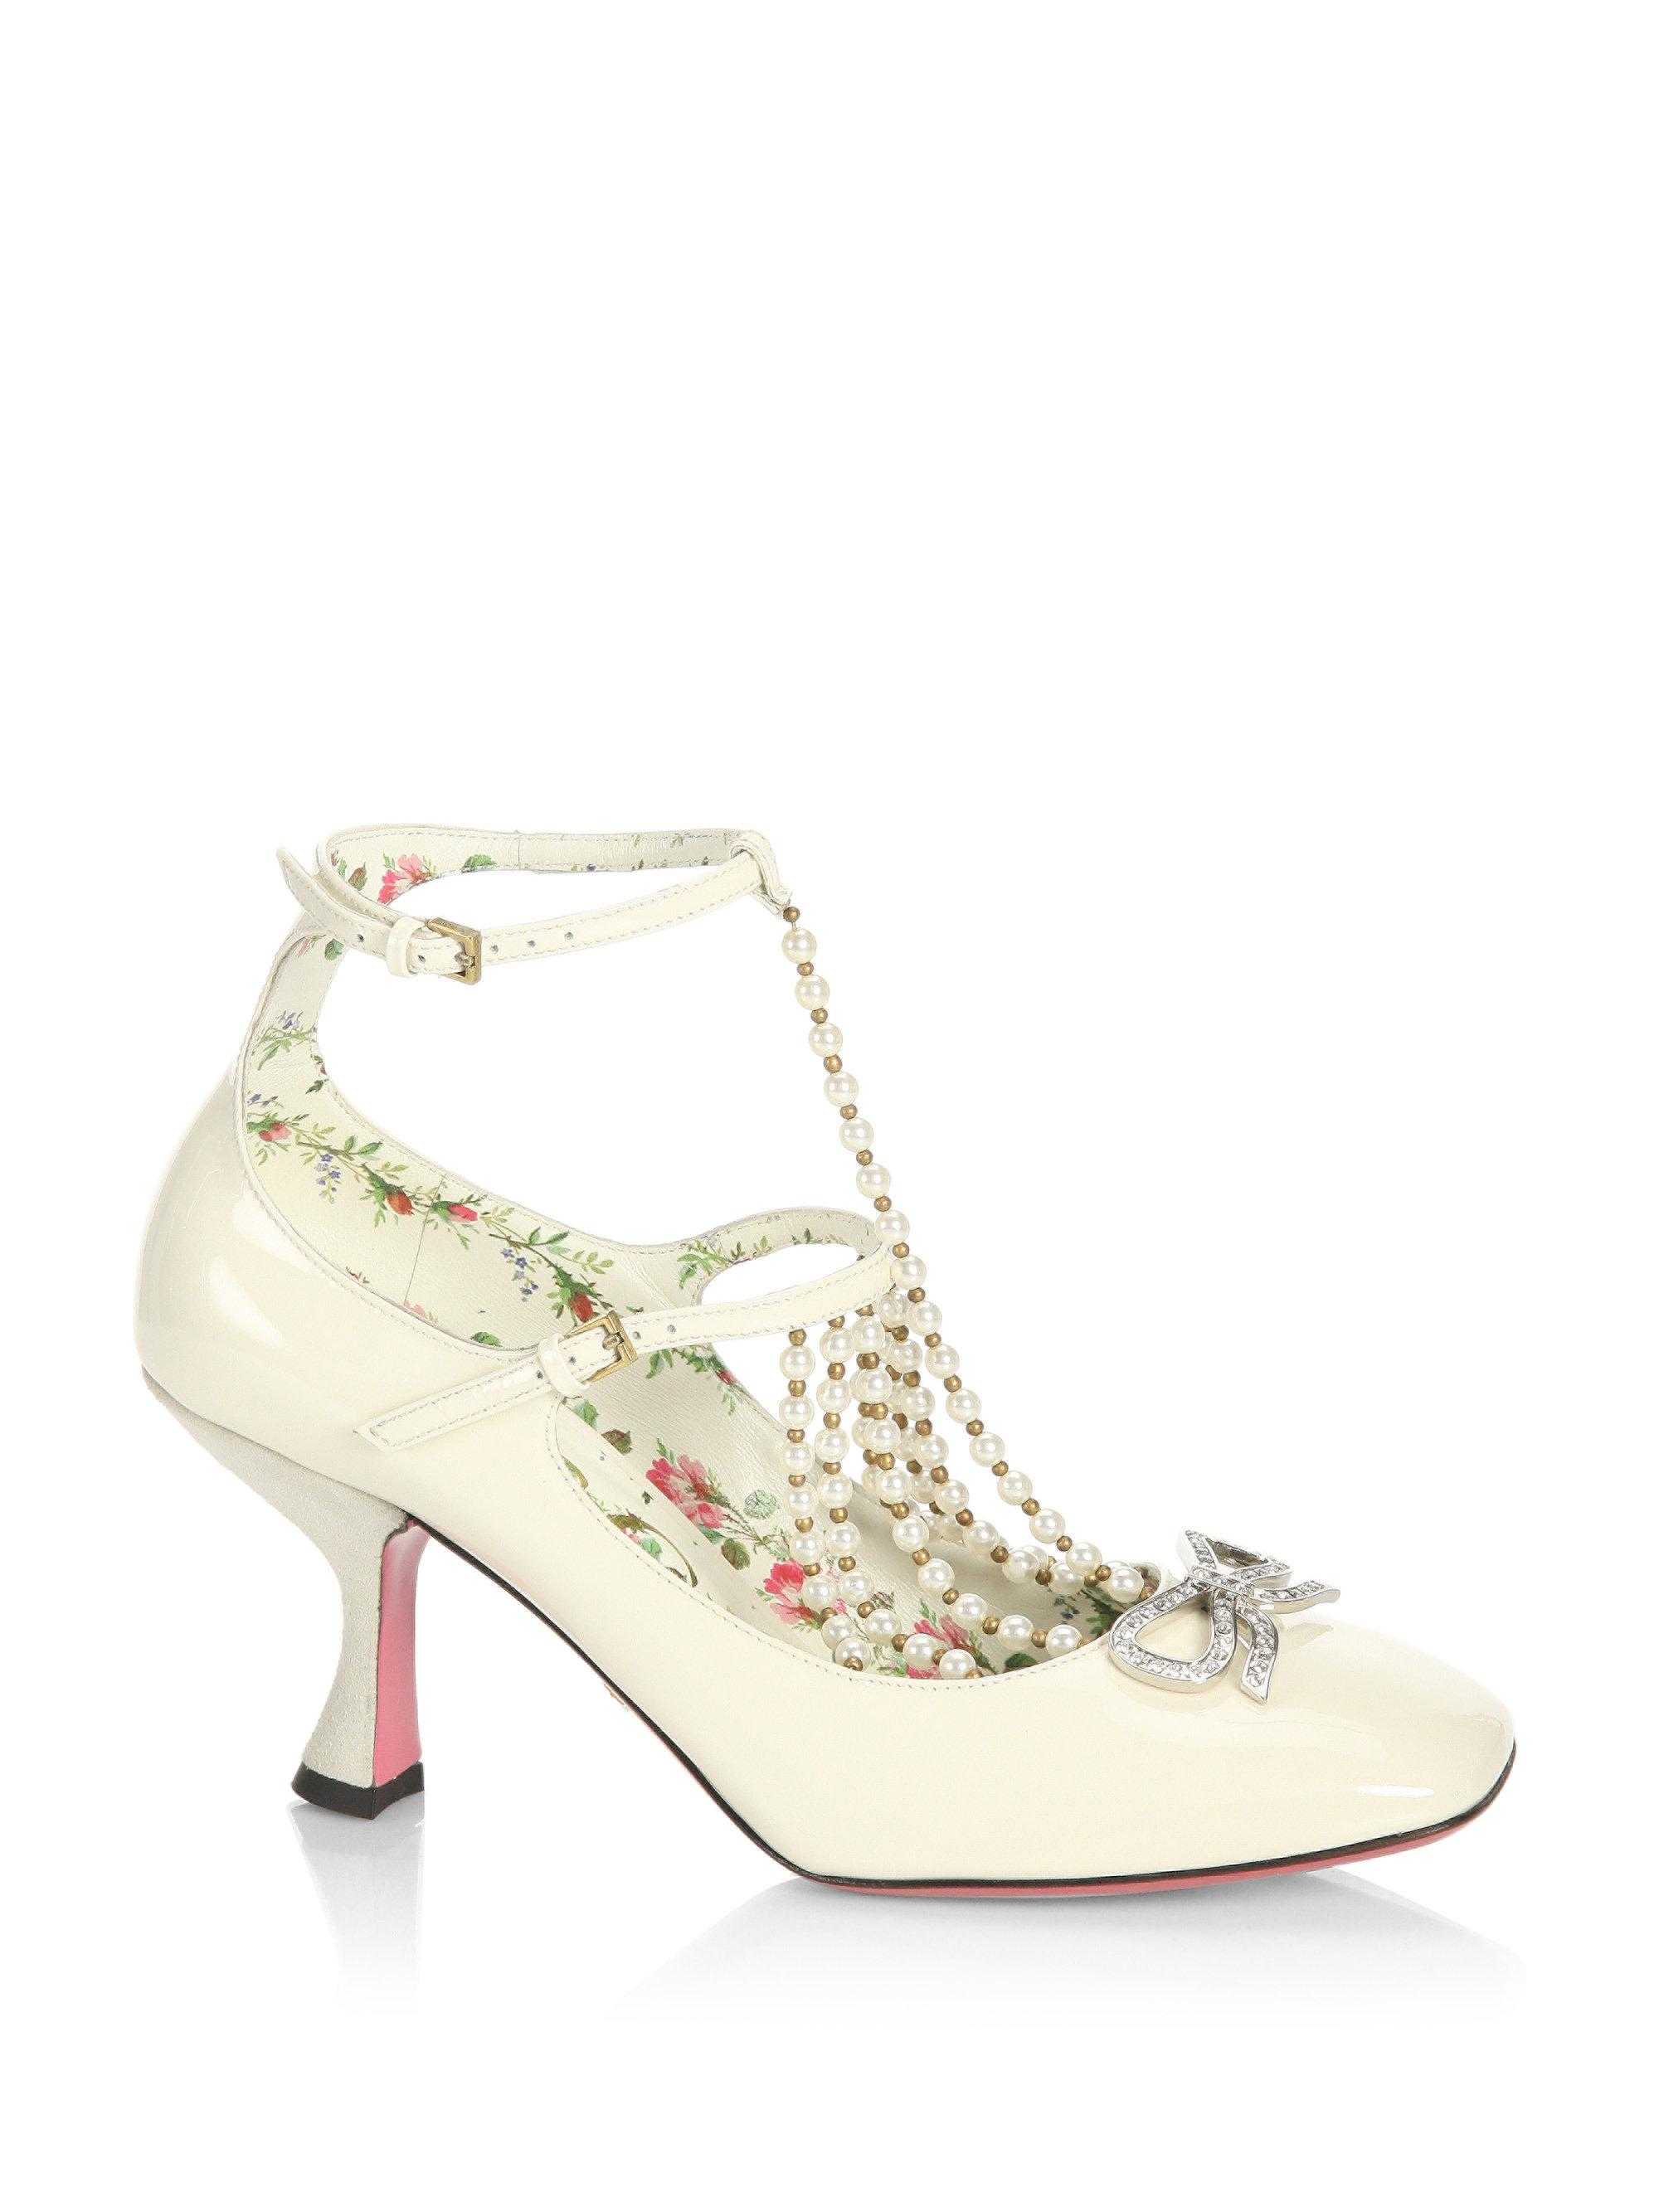 426e53f54a Gucci Taide Pearl-embellished Patent Leather Mary Jane Pumps in ...